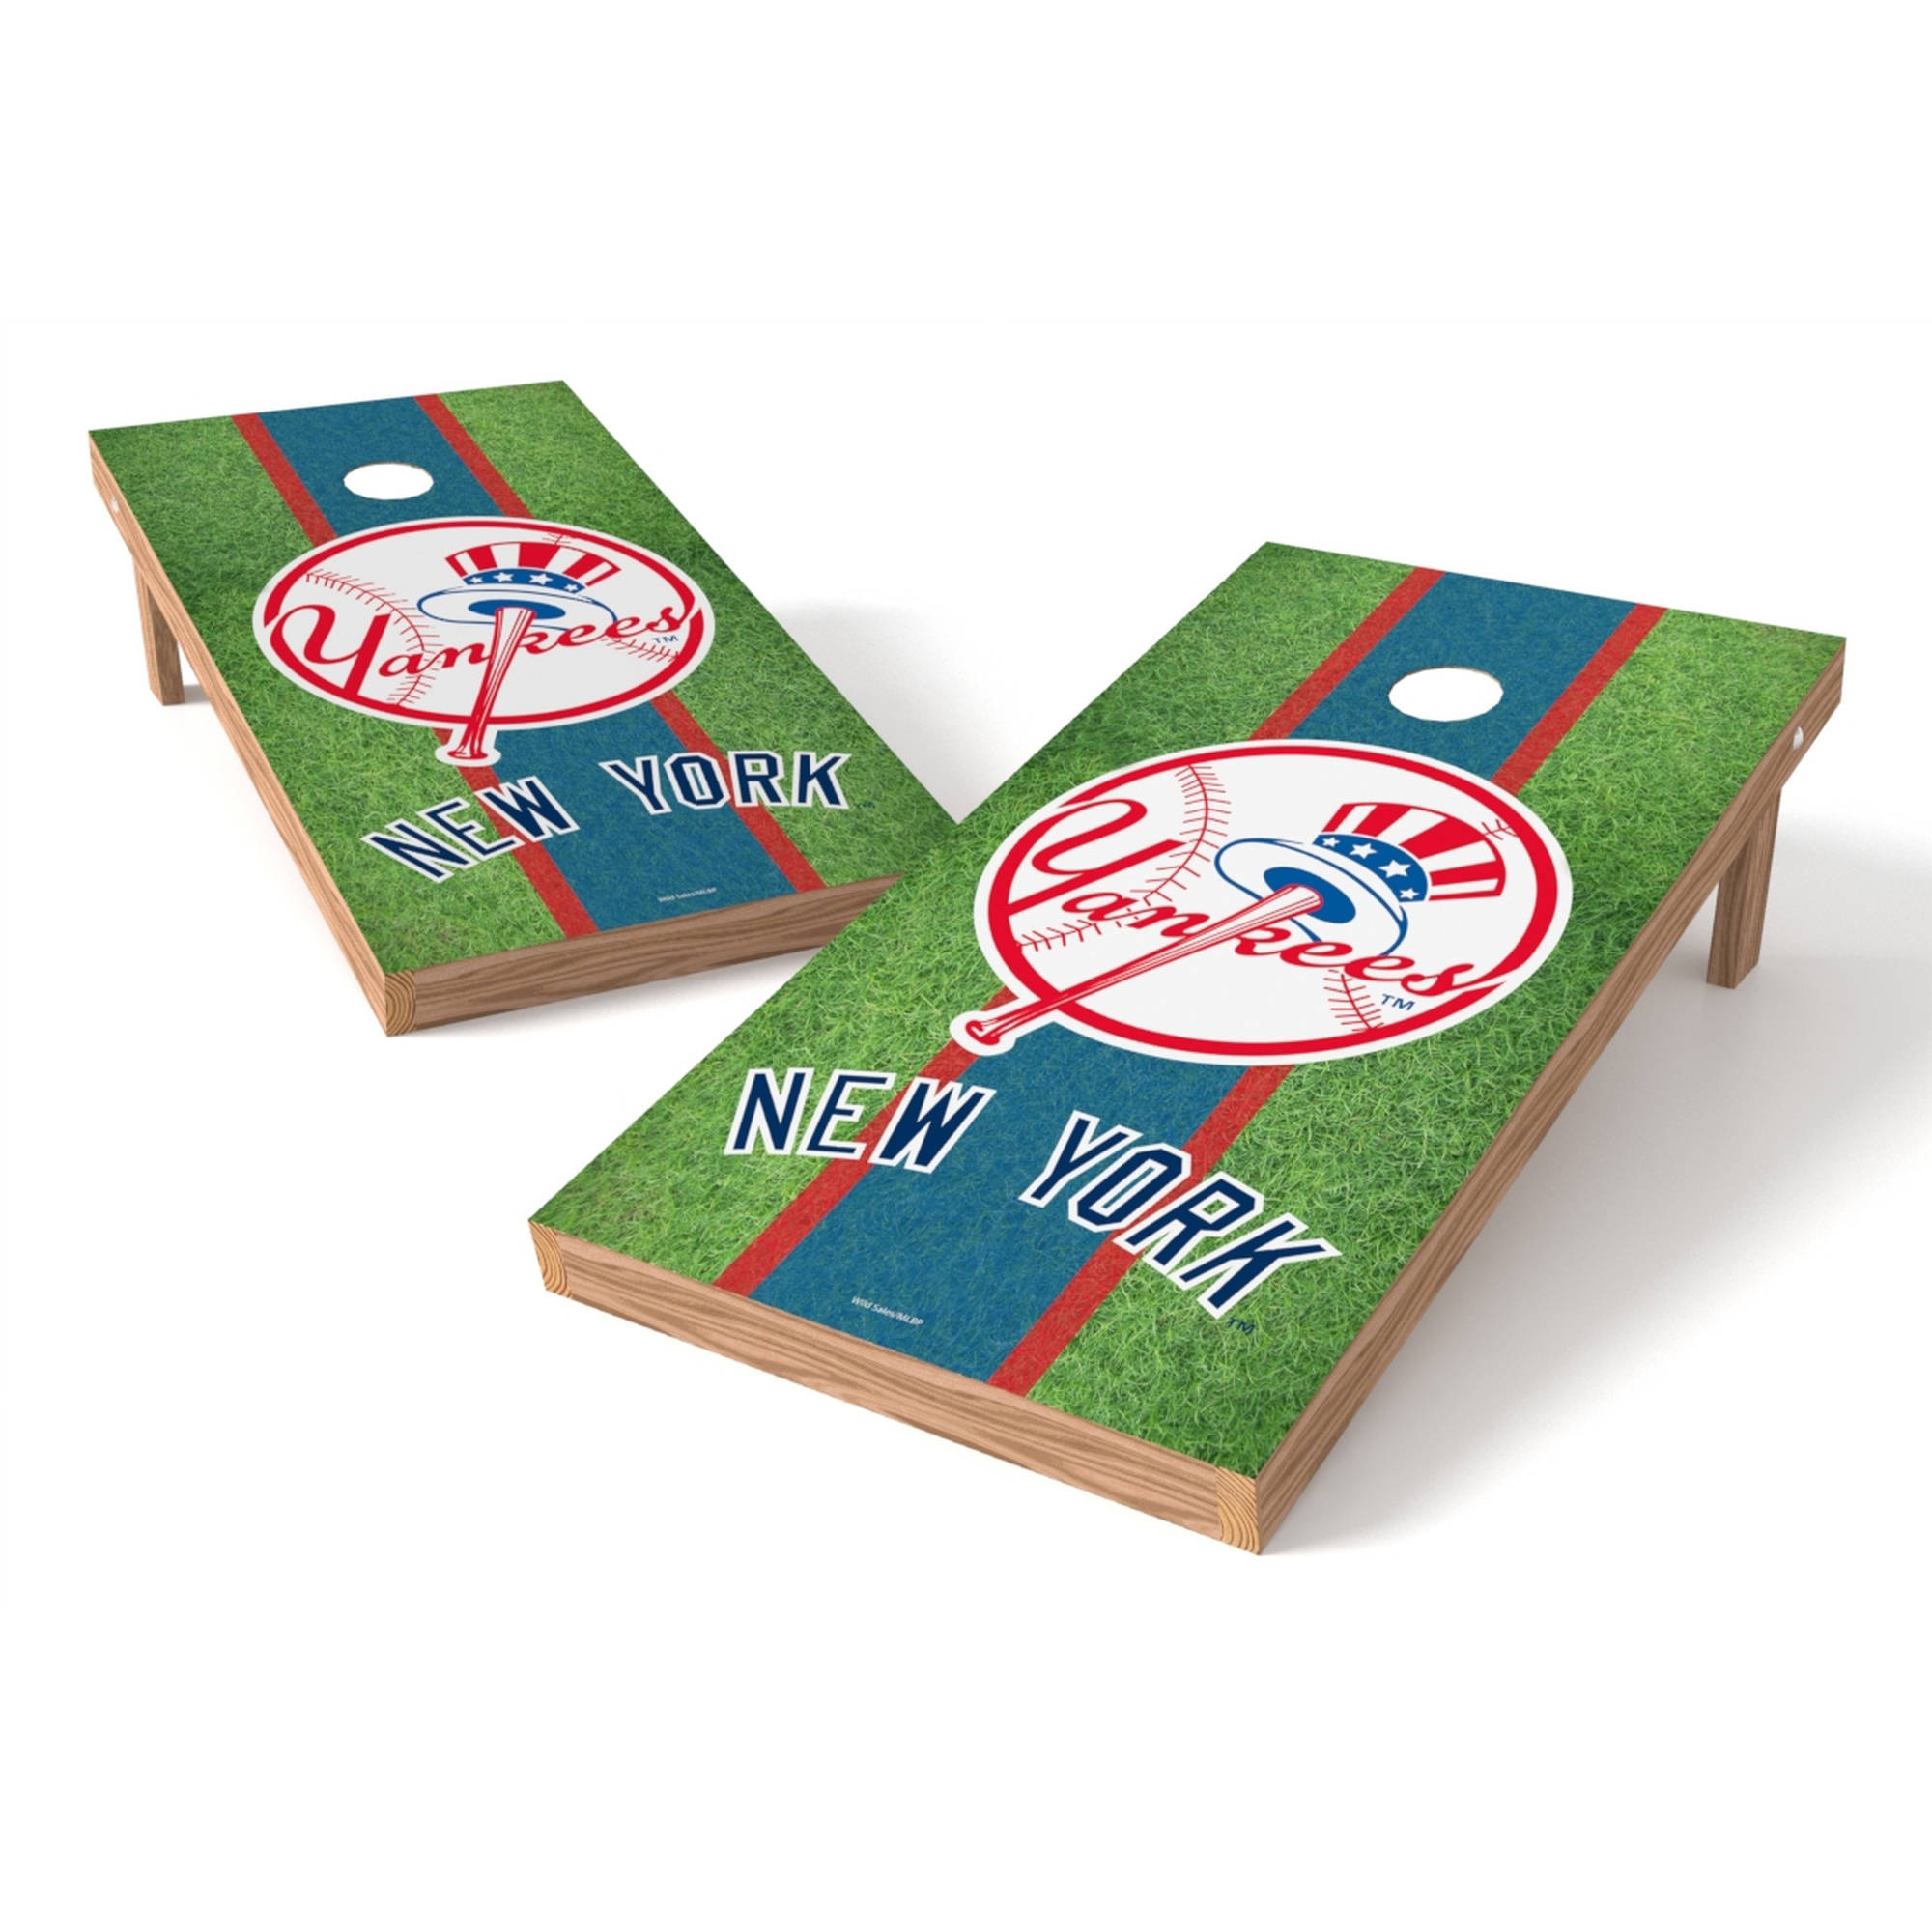 Wild Sports MLB New York Yankees Shield 2x4 Field Grass Tailgate Toss XL Game